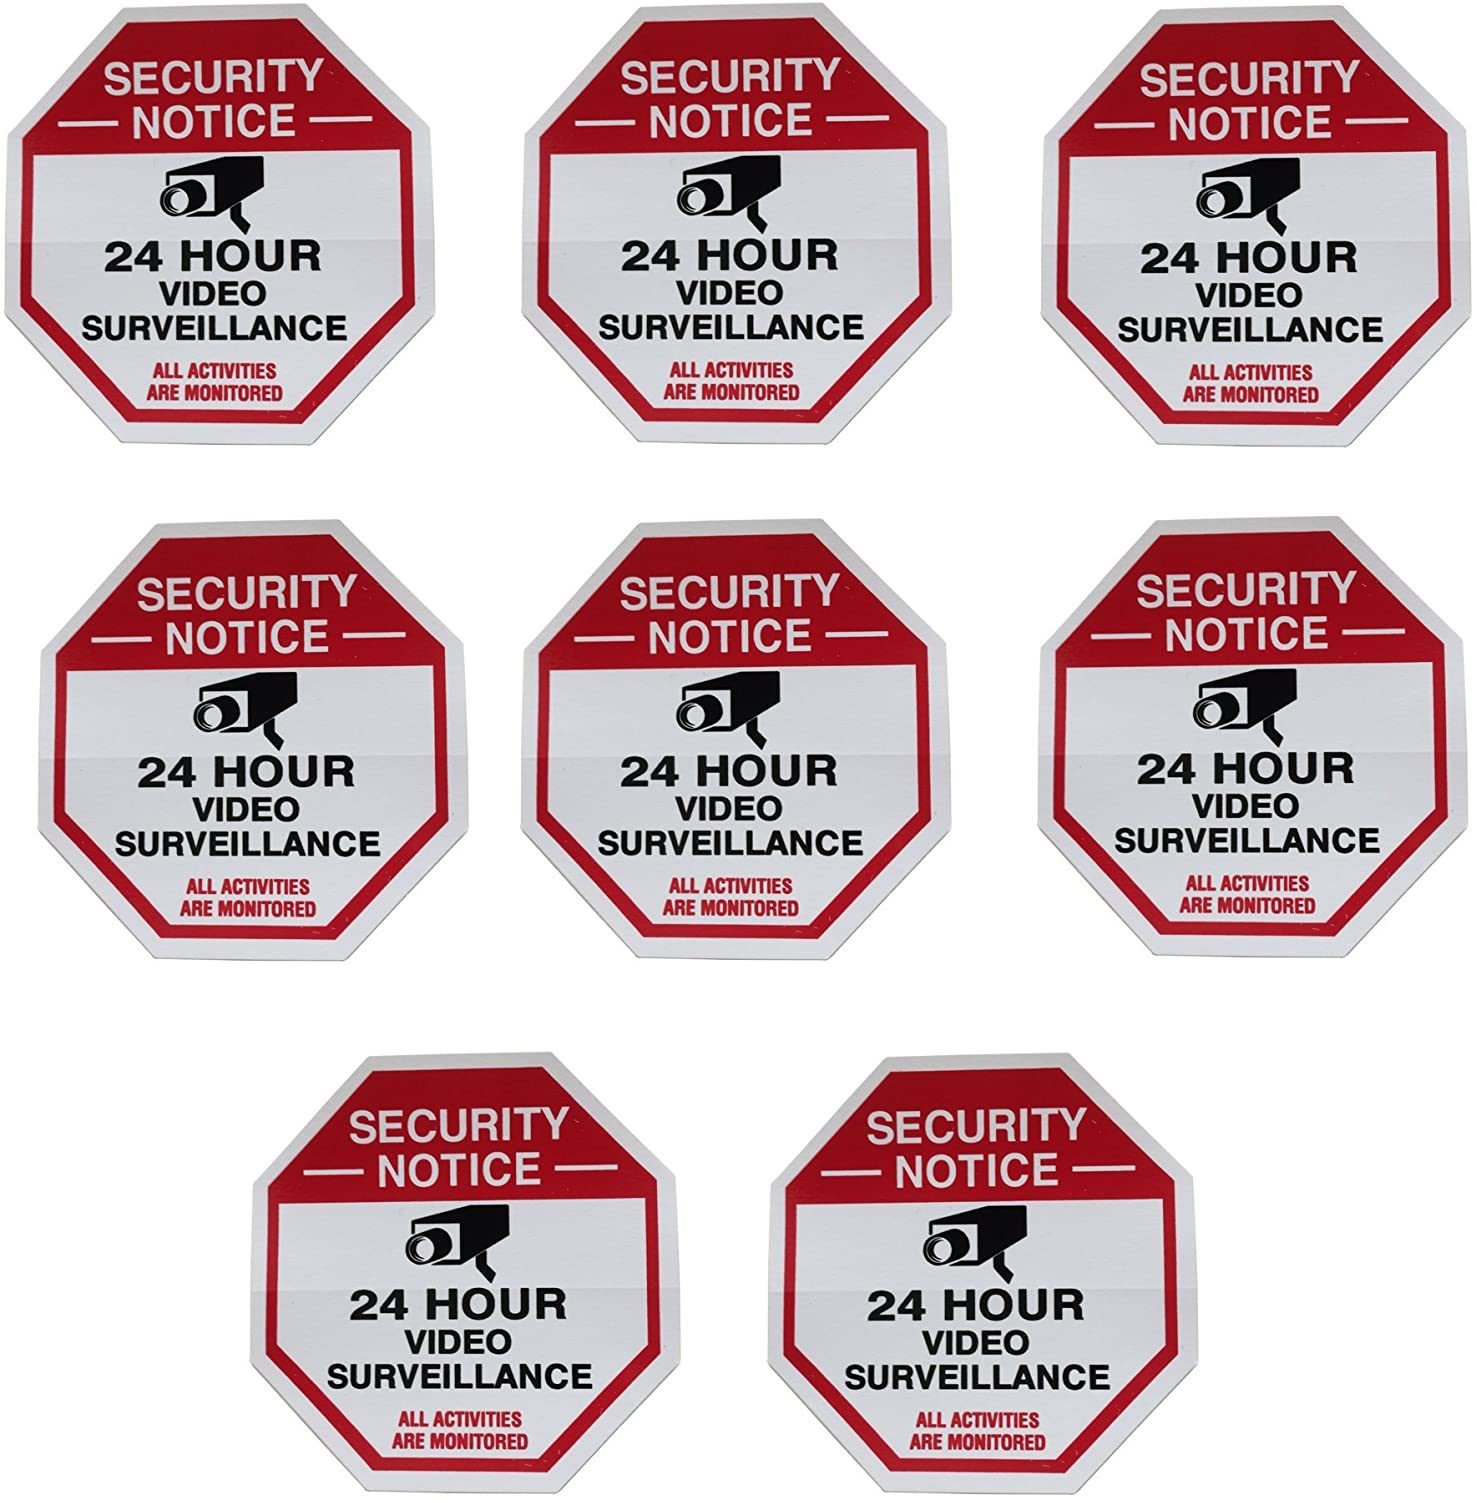 8 Red Octagon-Shaped Video Surveillance System Security Door & Window Stickers 3 X 3 Inch Vinyl Decals